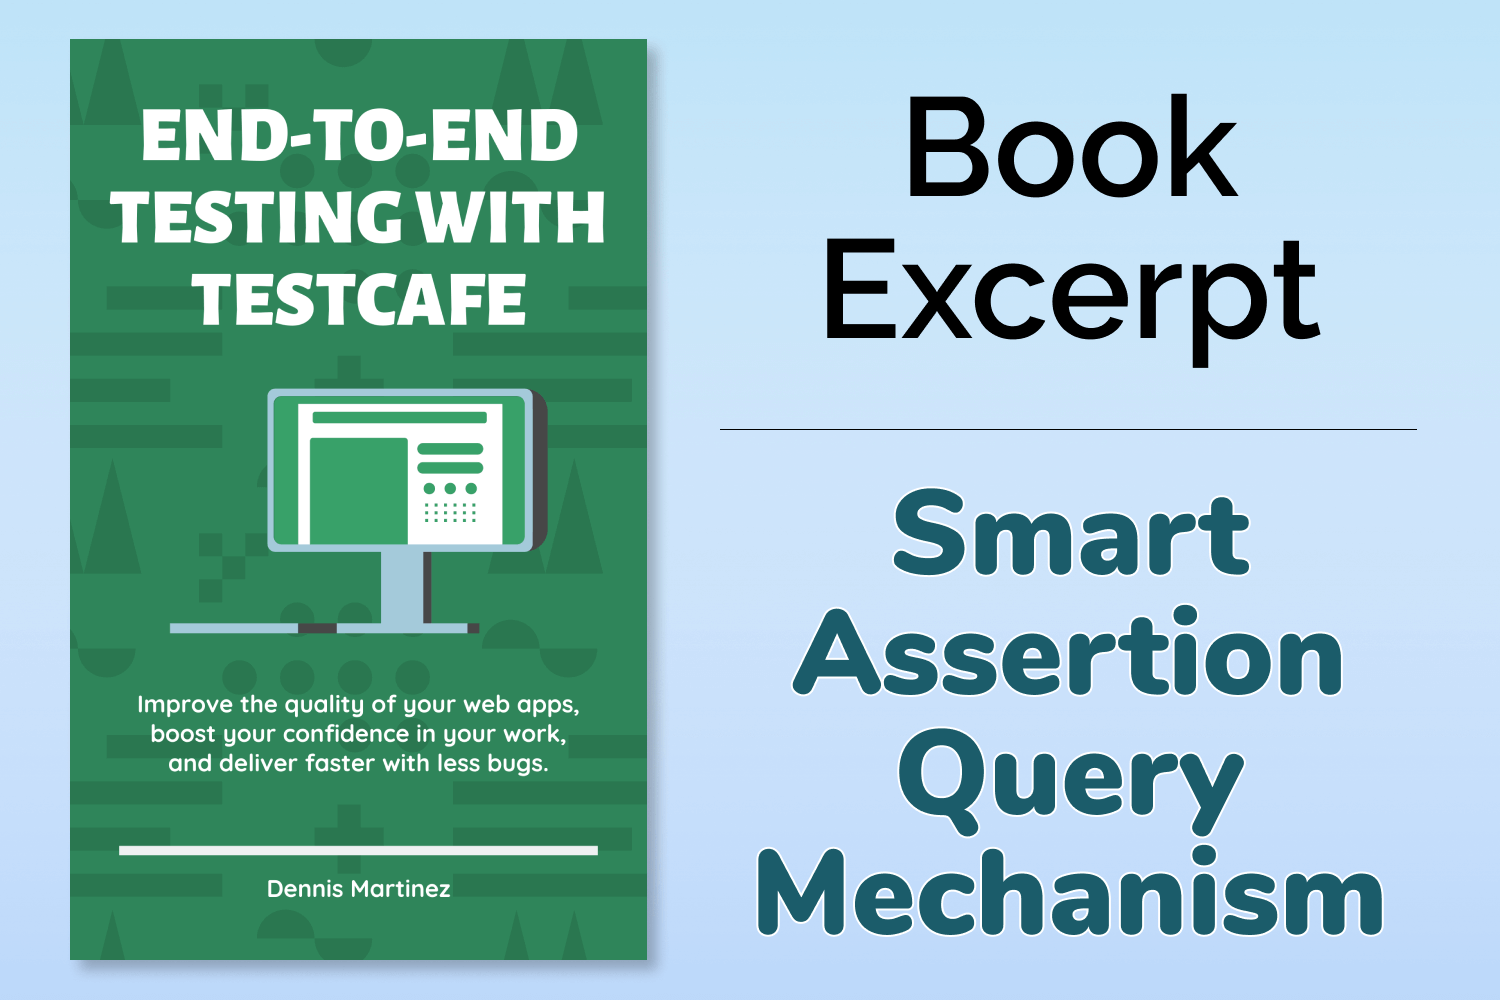 End-to-End Testing with TestCafe Book Excerpt: Smart Assertion Query Mechanism